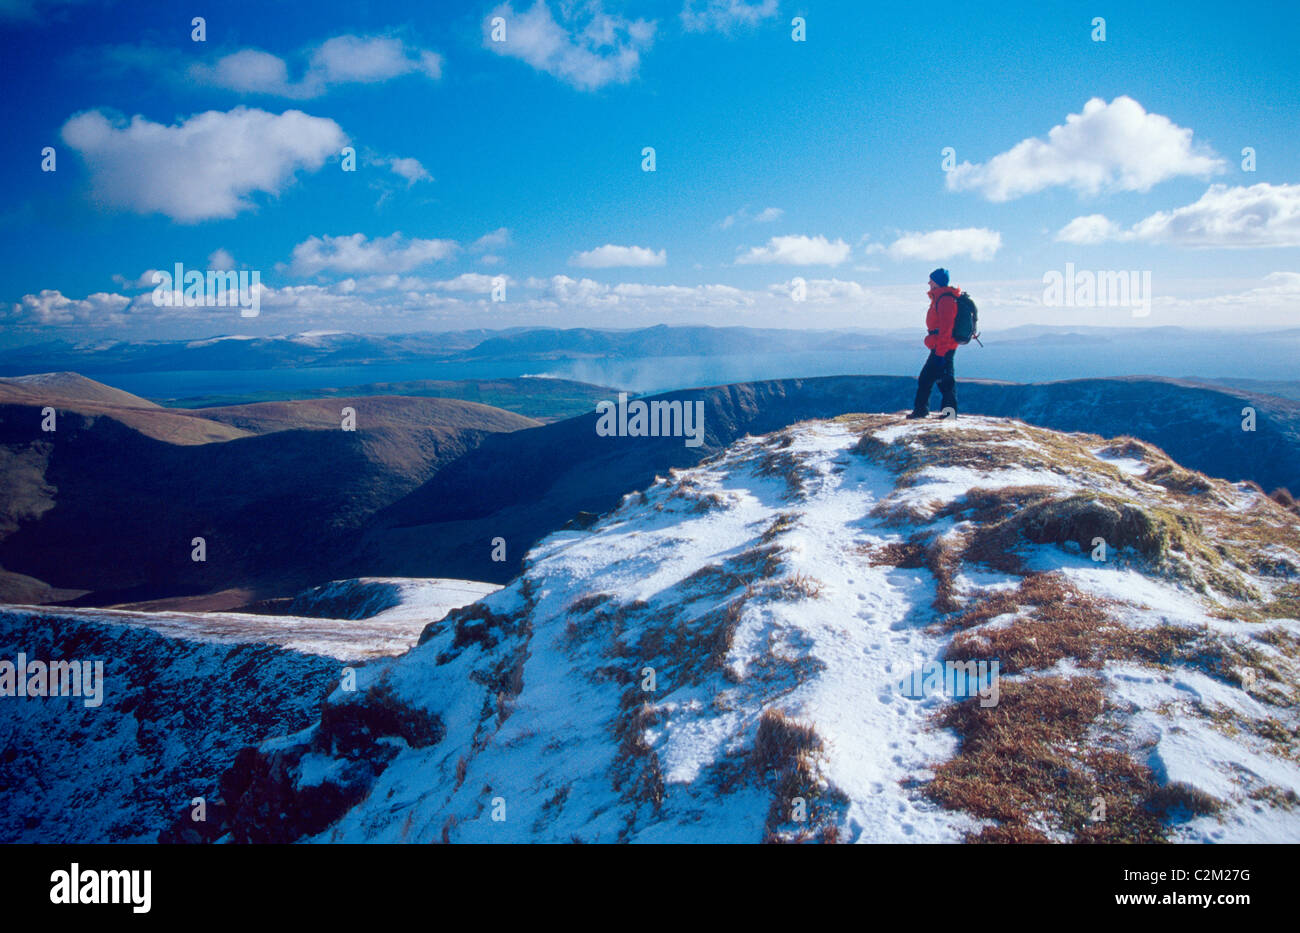 Winter-Wanderer auf dem Gipfel des Gearhane, Brandon-massiv, Halbinsel Dingle, County Kerry, Irland. Stockbild